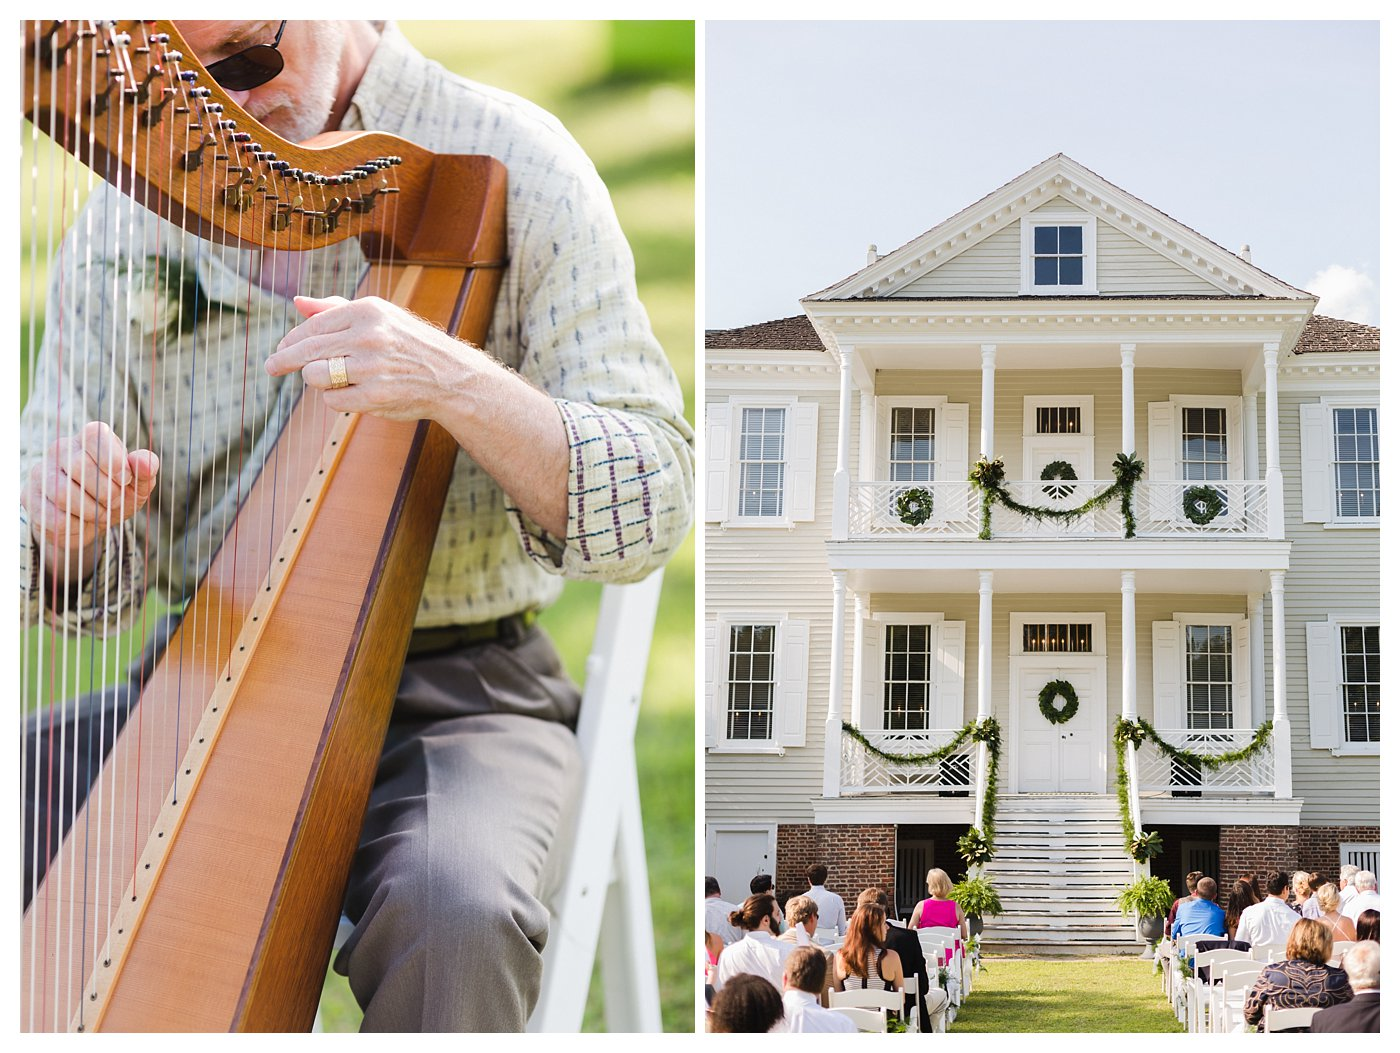 Historic_Hope_Plantation_Wedding_Photography_Sage_Summer_Outdoor_Windsor_NC_0025.jpg